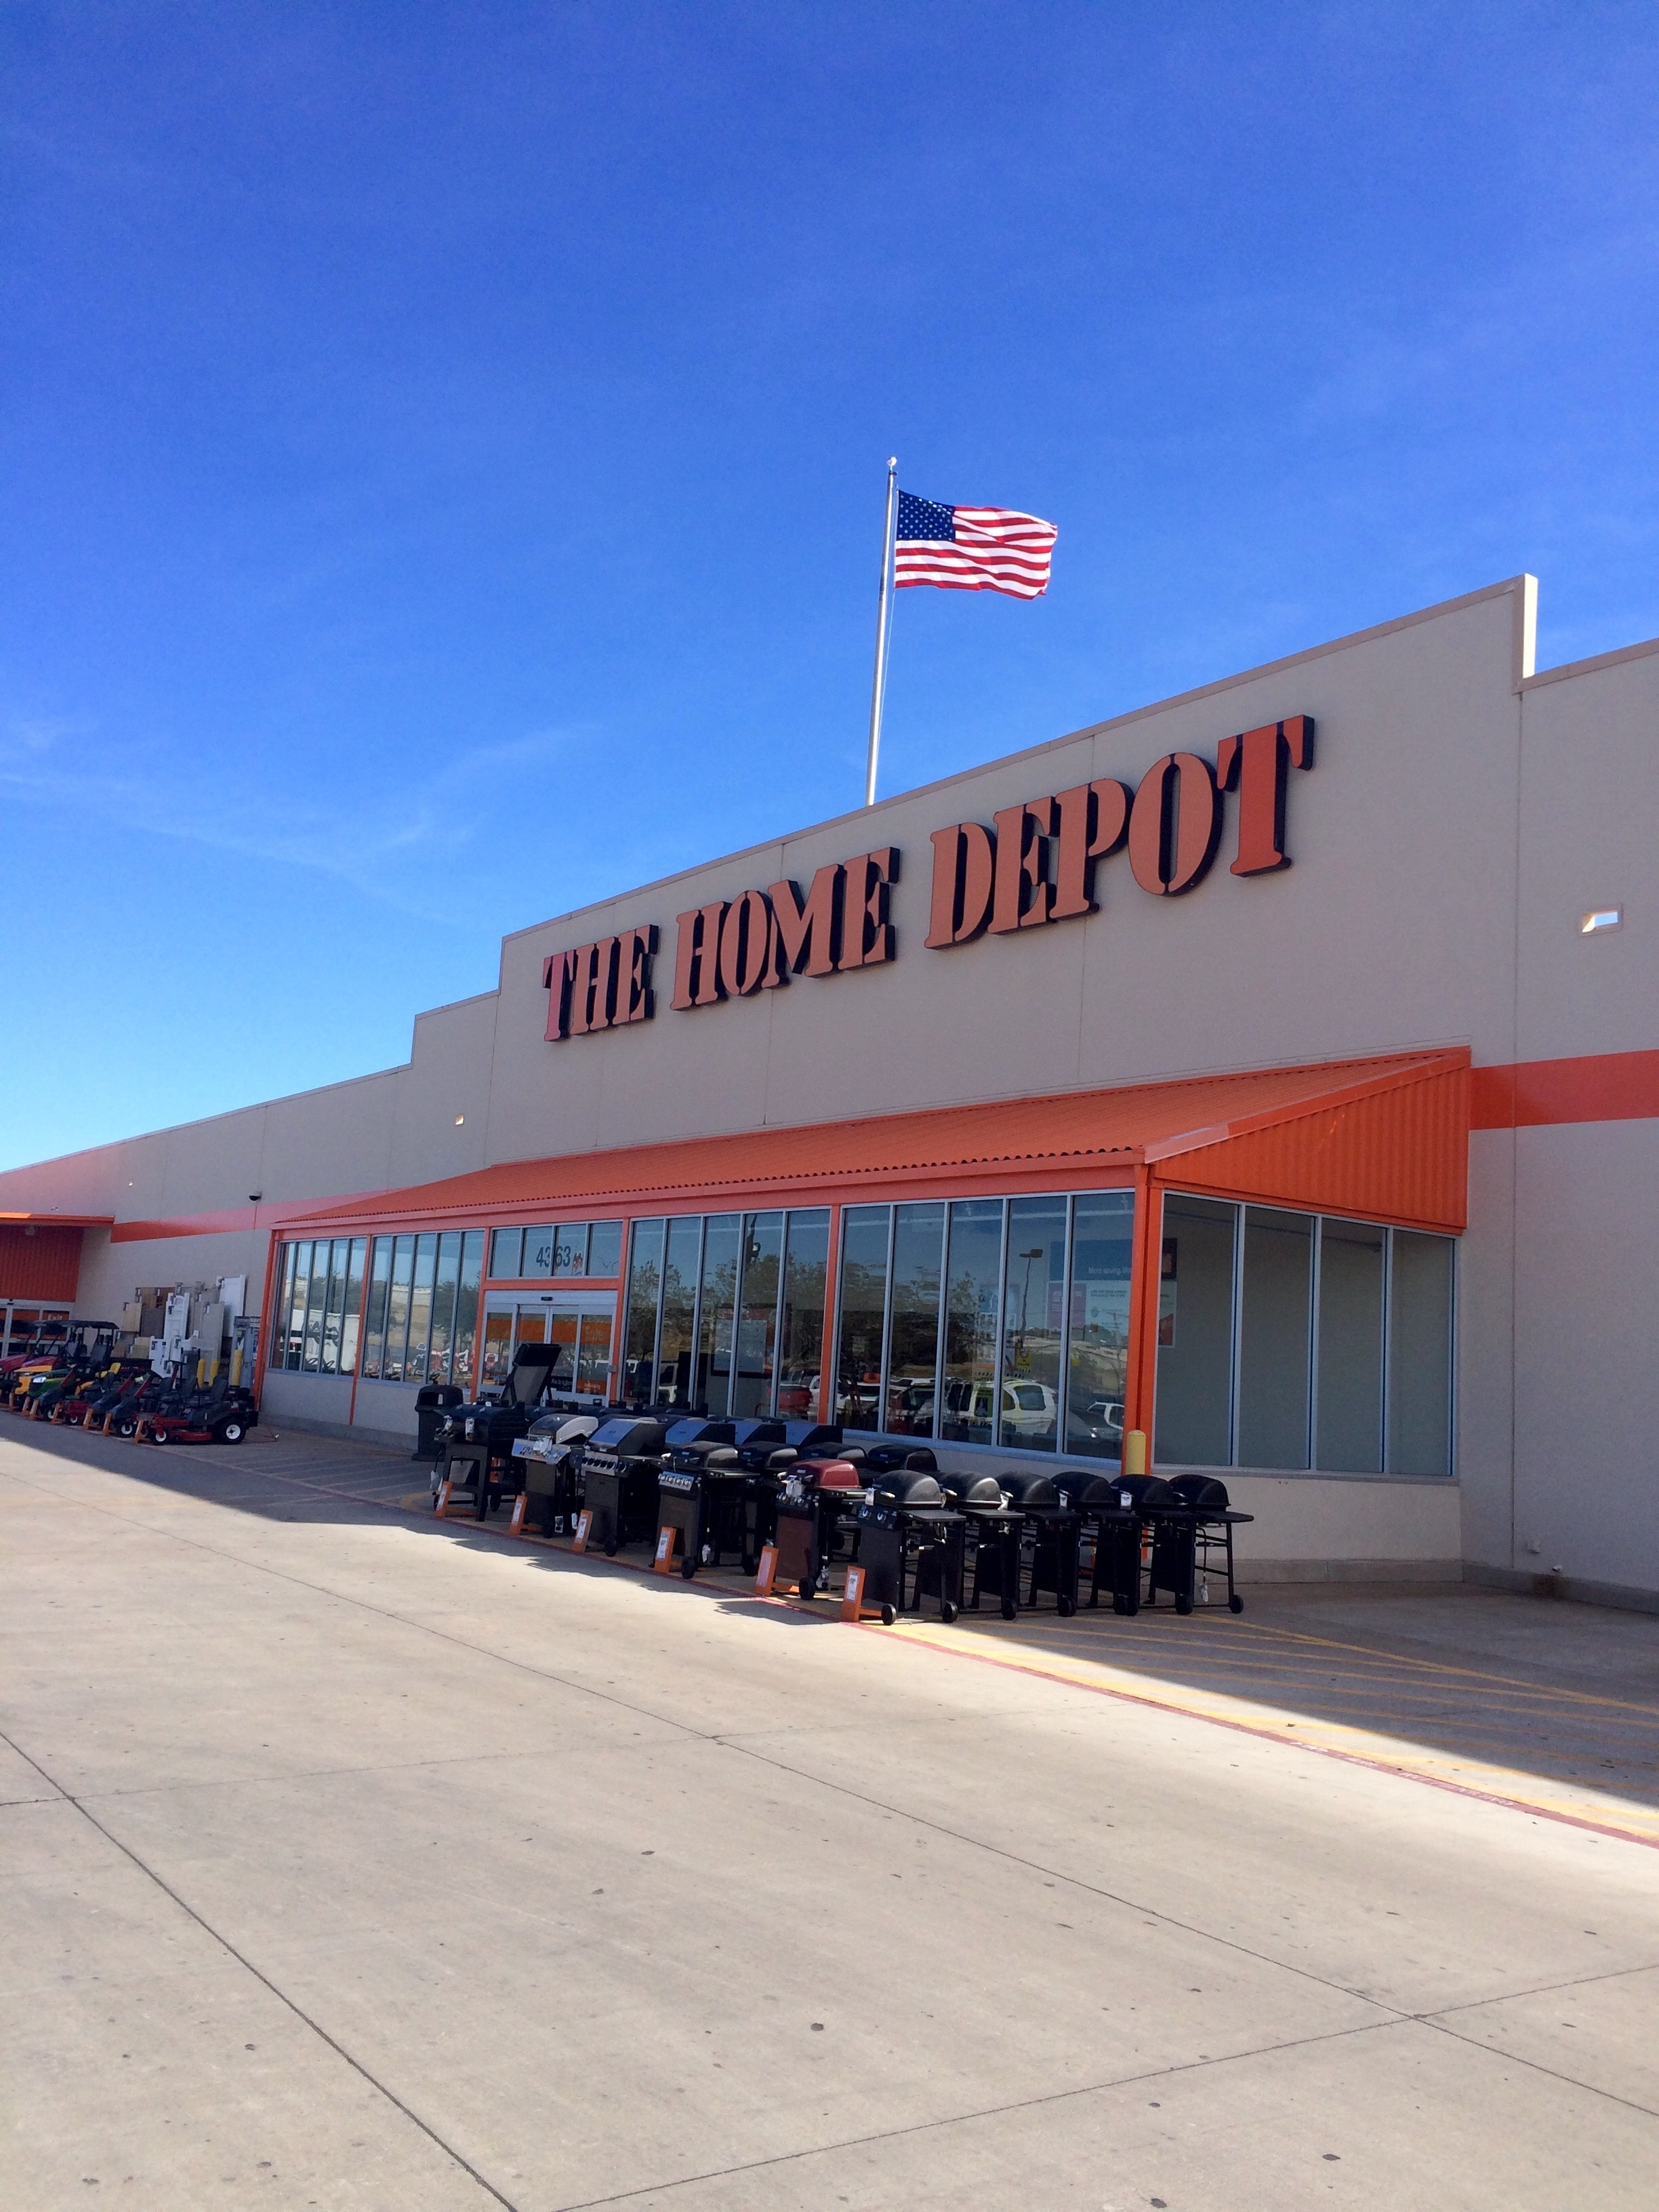 The Home Depot 4363 Houston Harte Exwy San Angelo Tx Hardware